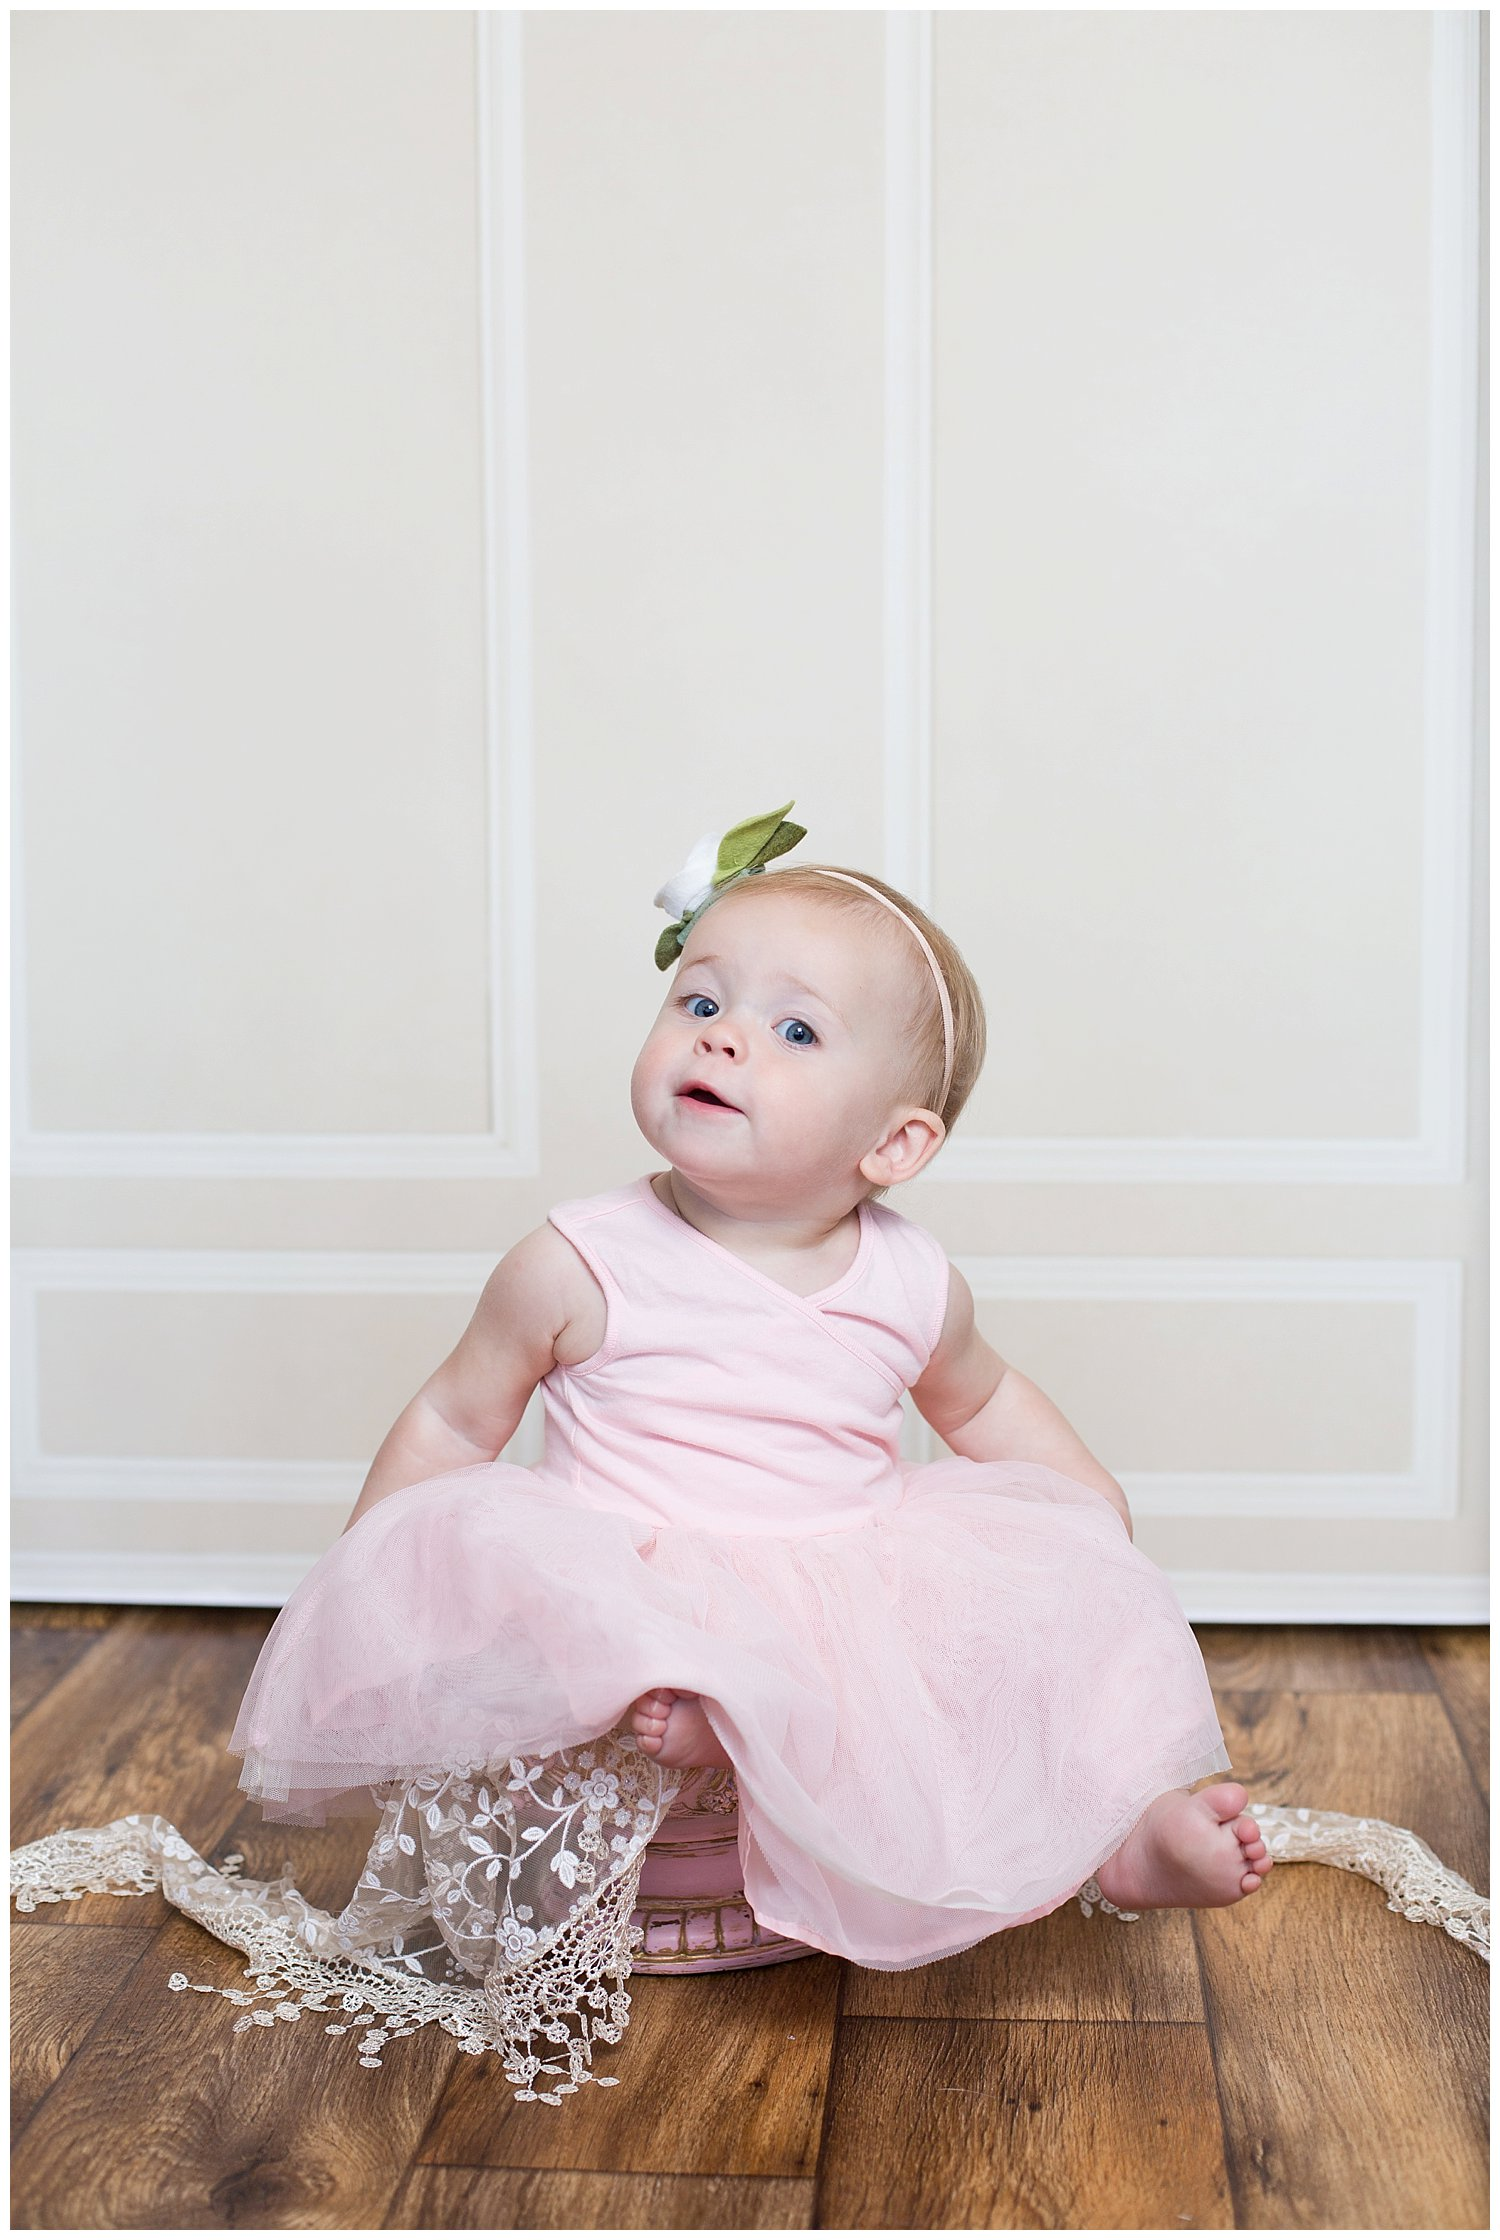 One year old and full of personality - Look at that darling facial expression!